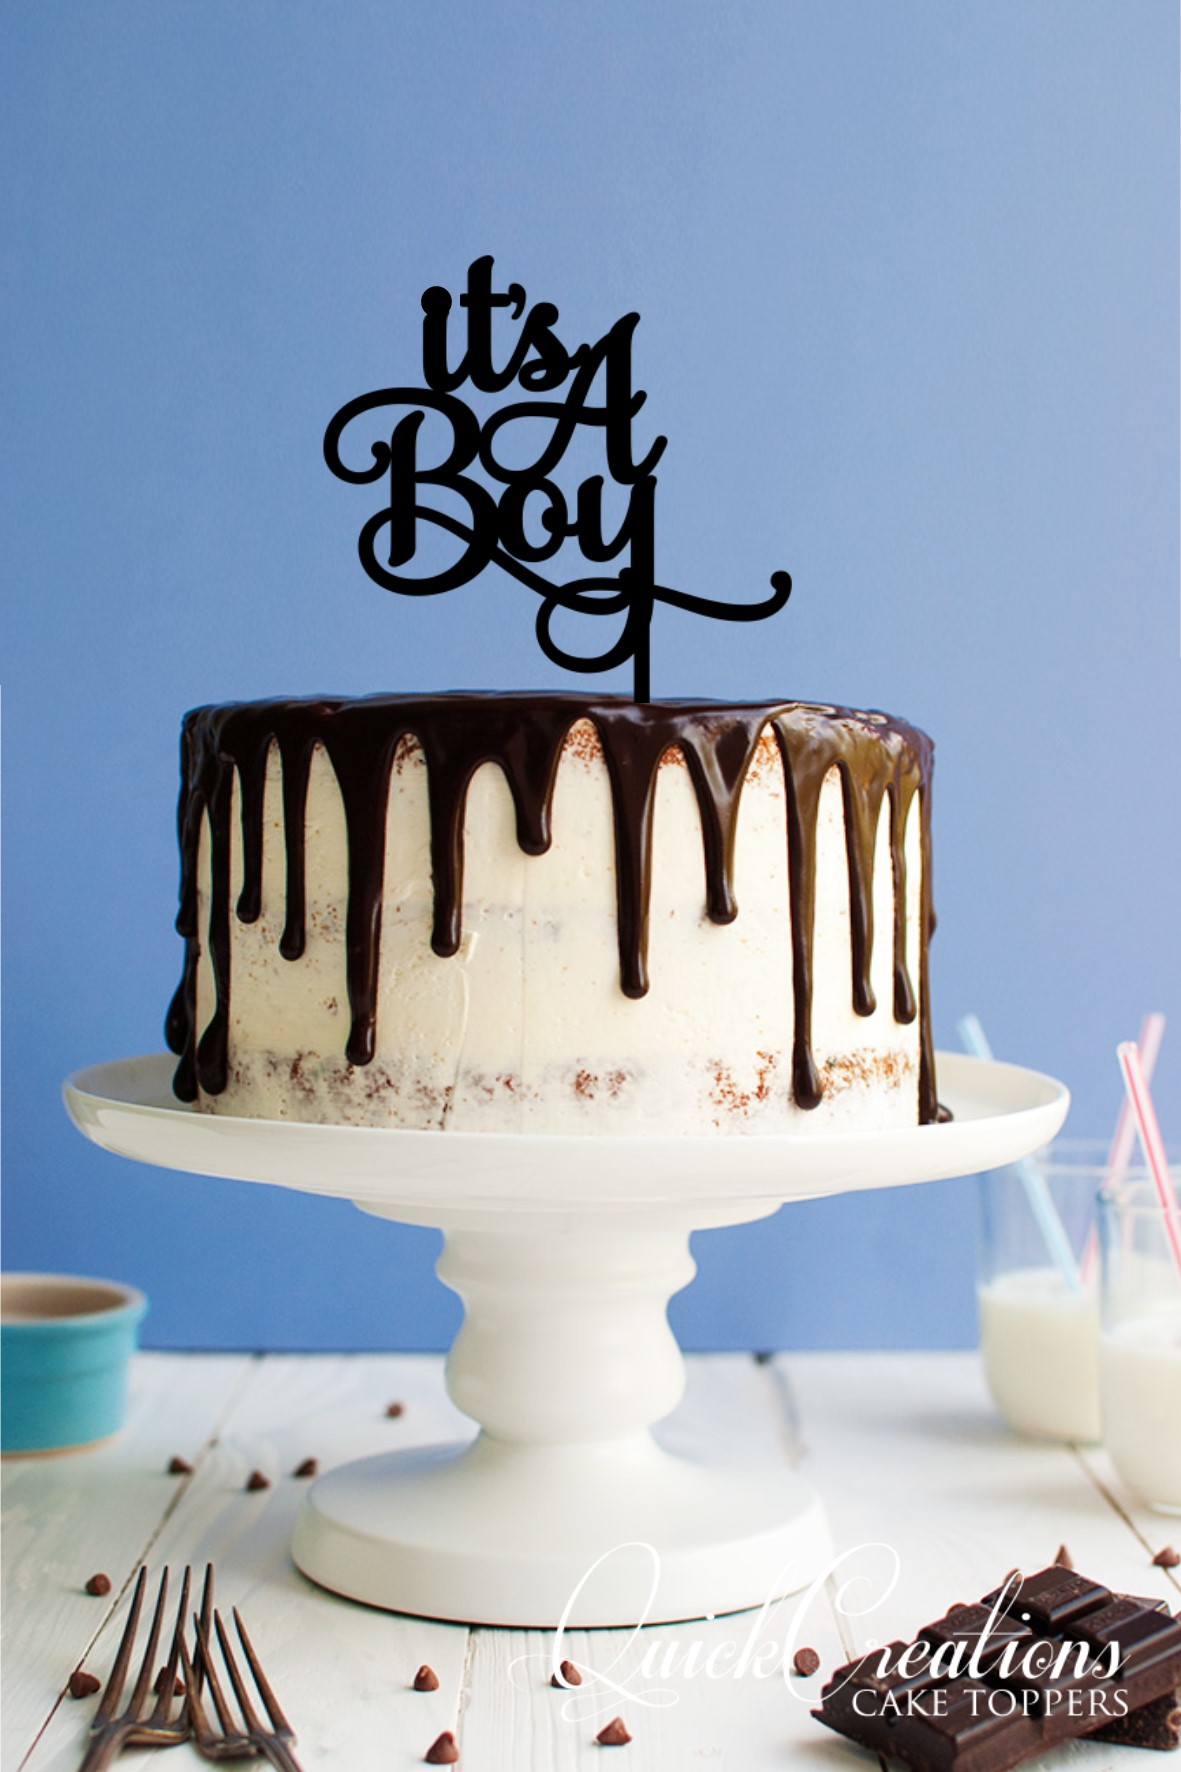 Quick Creations Cake Topper - Its a Boy